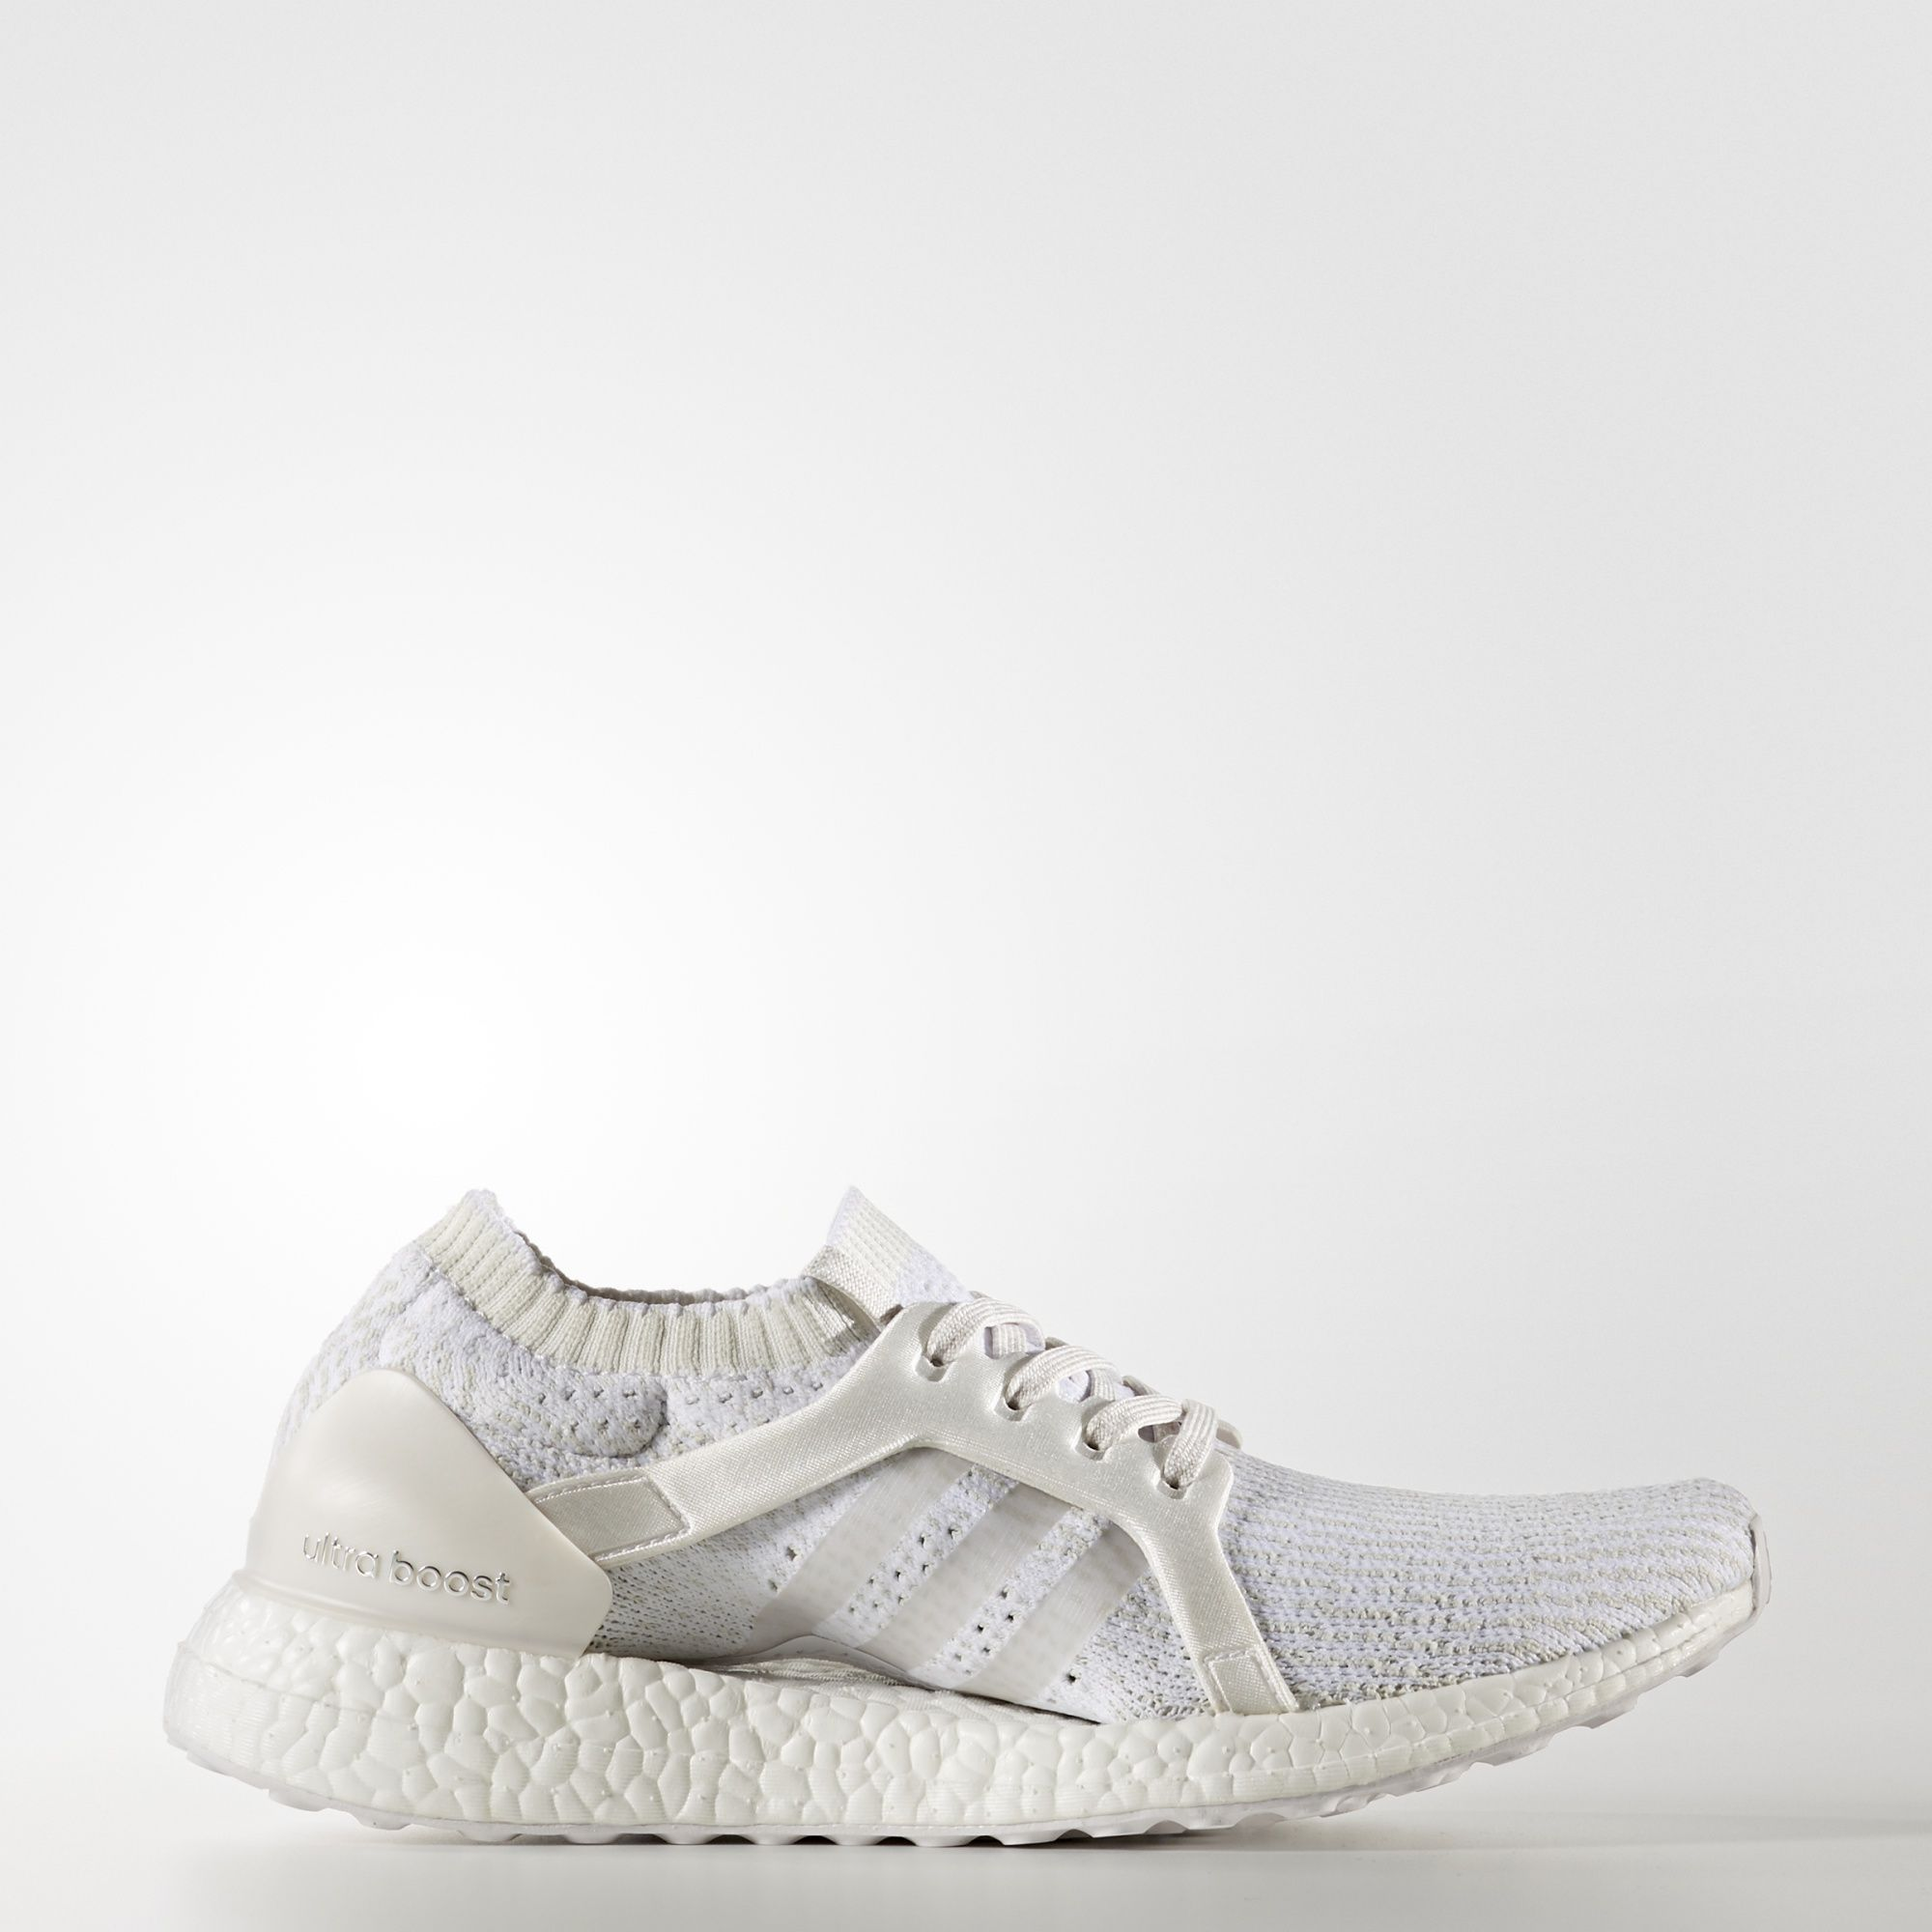 594b7b2cc948e adidas - UltraBOOST X Clima Shoes